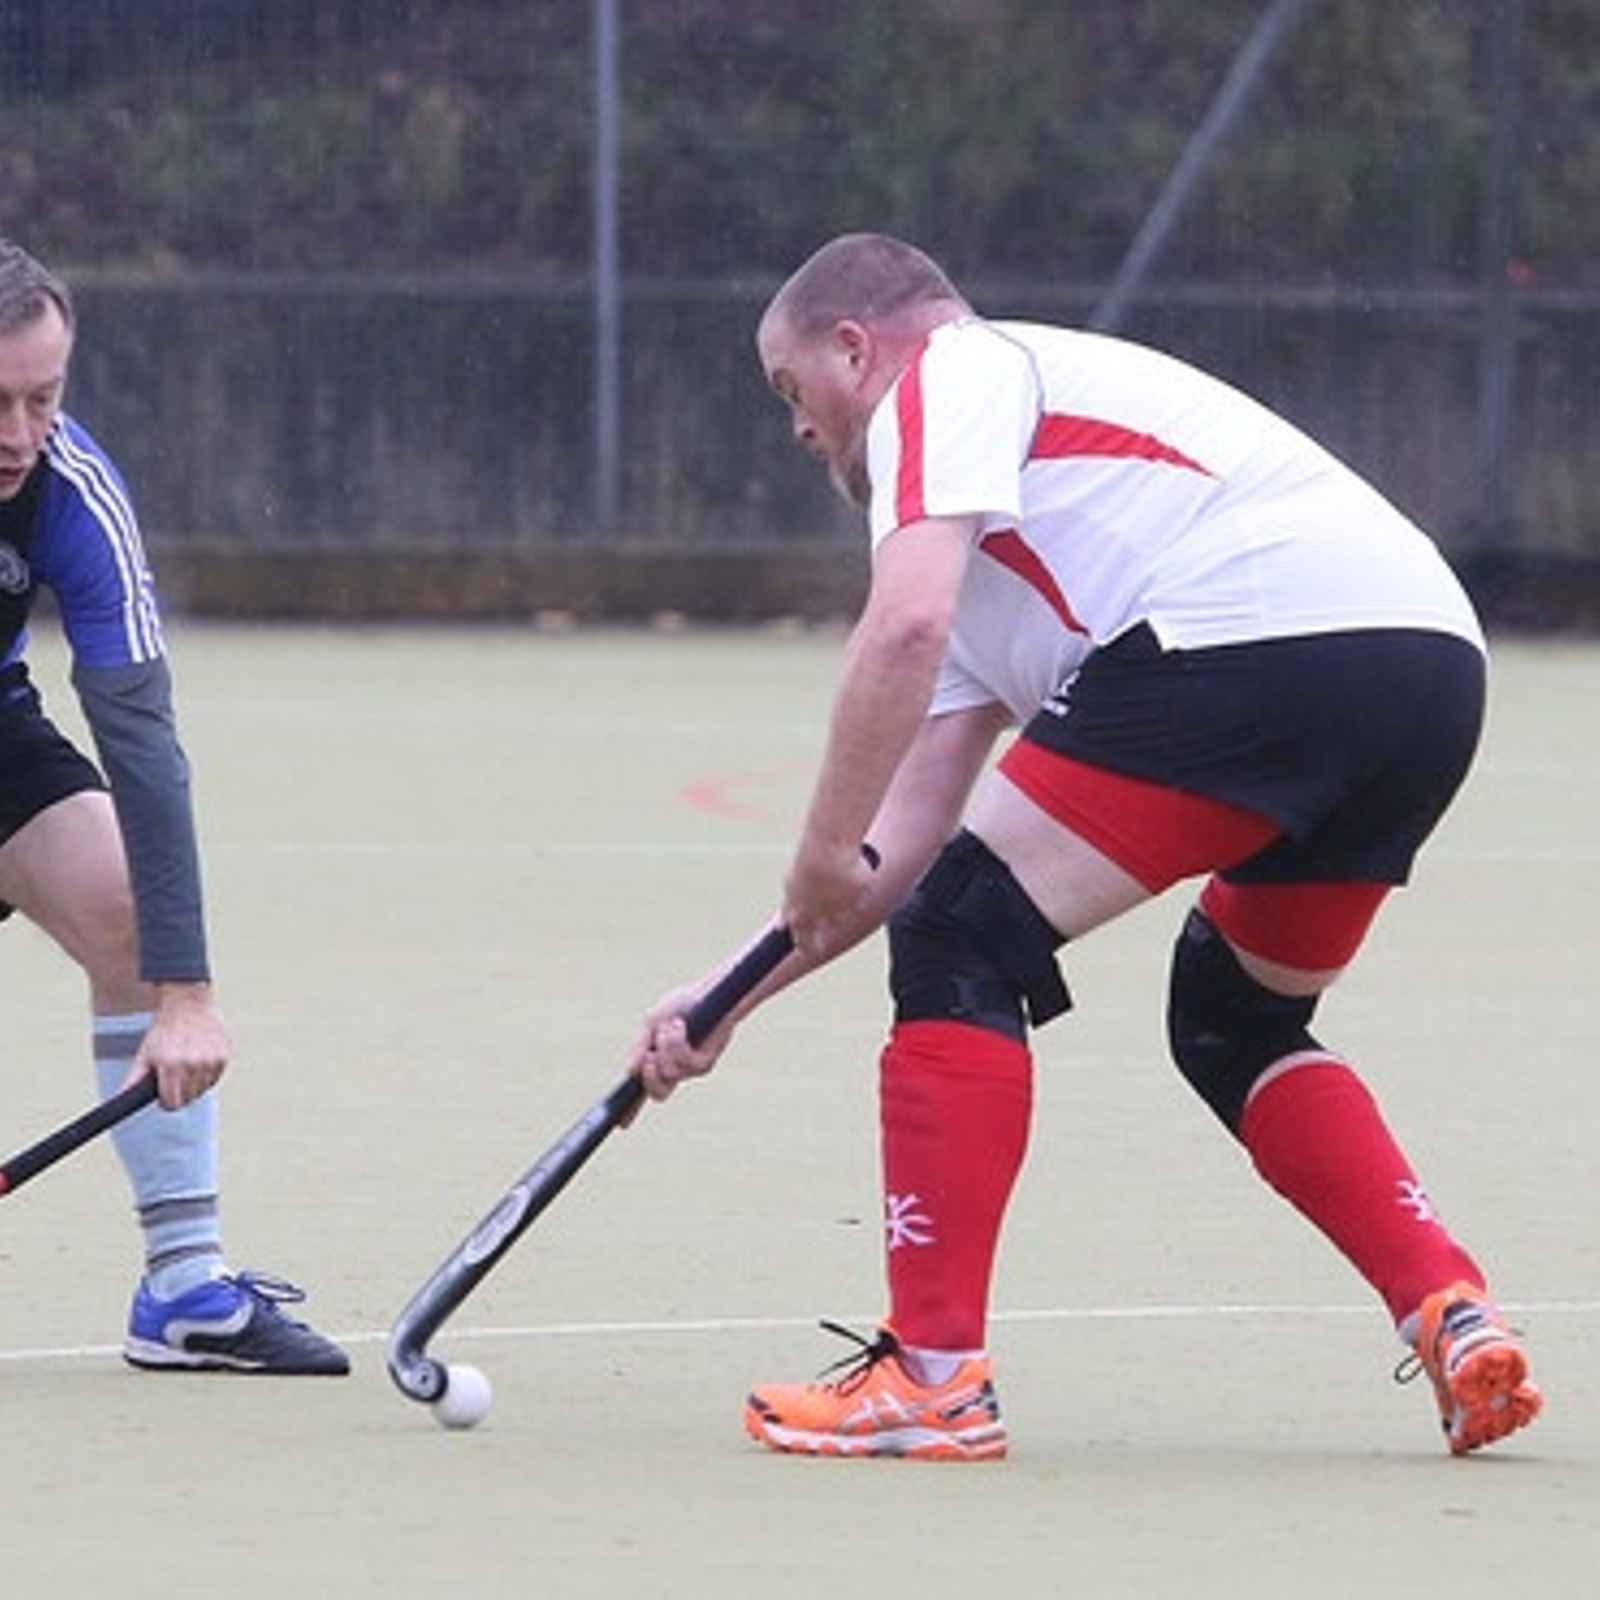 Physical match ends in defeat for M2s